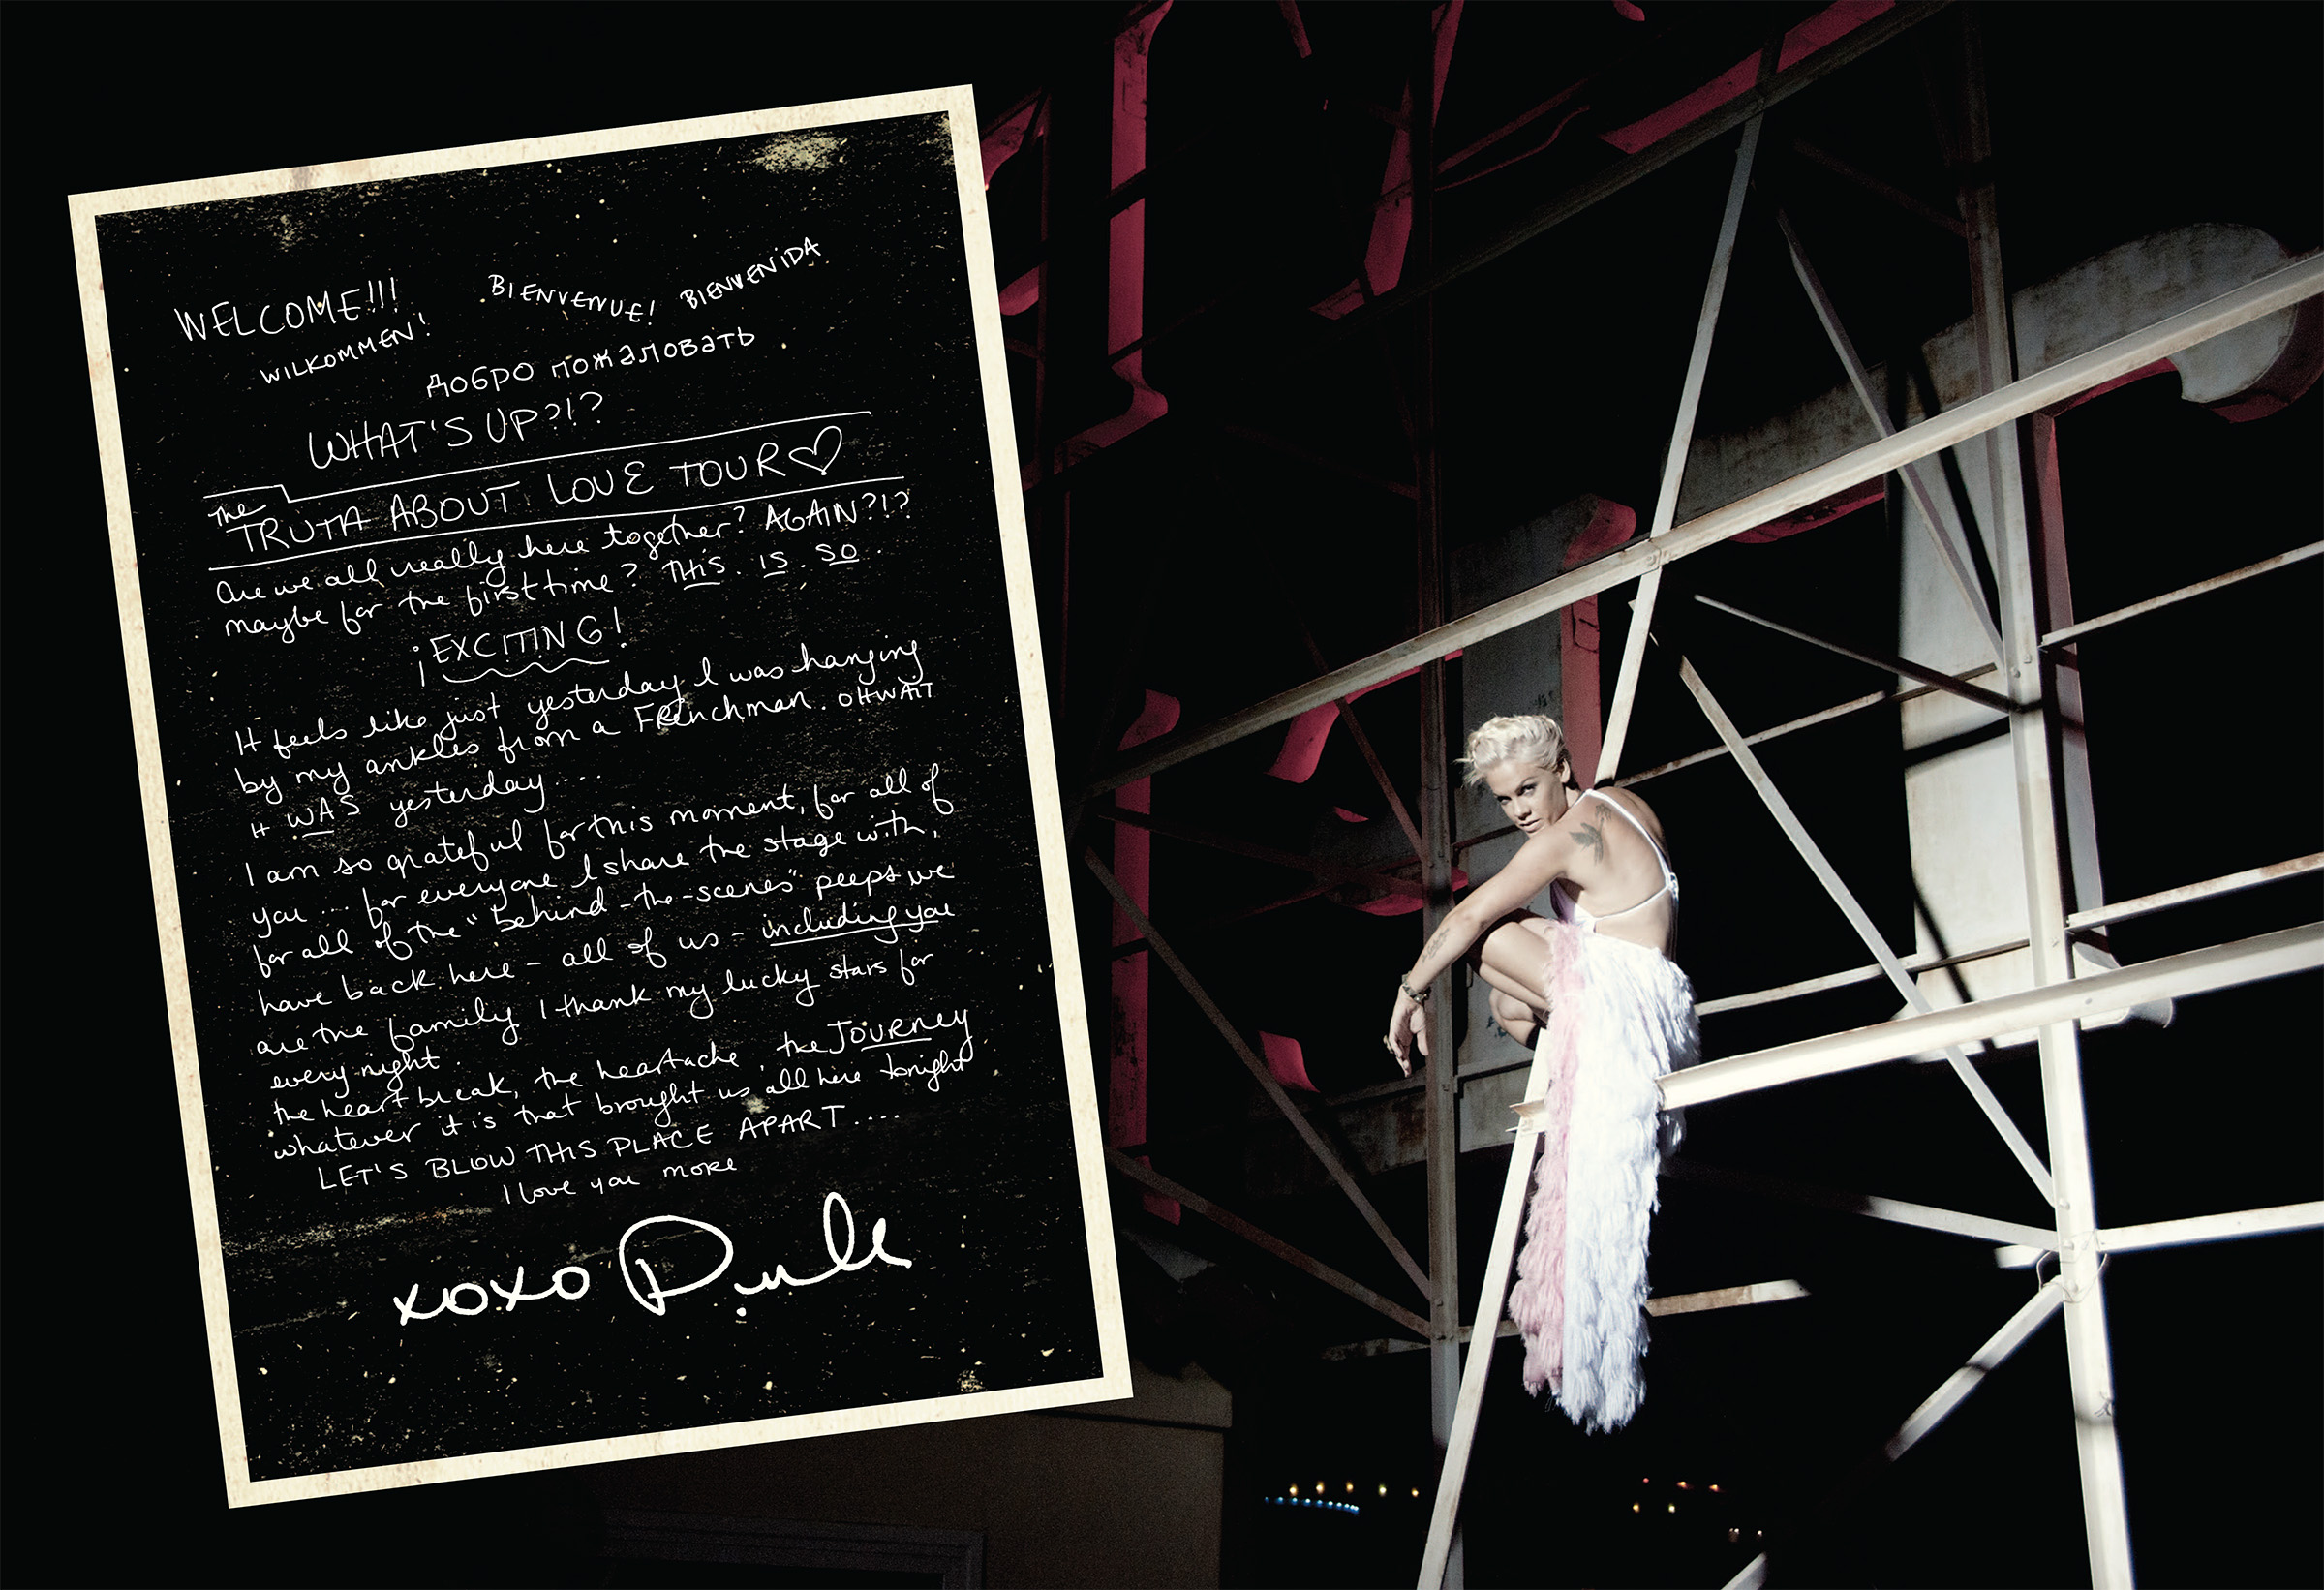 P!NK_TTAL_2013_Tourbook_spread_5.jpg